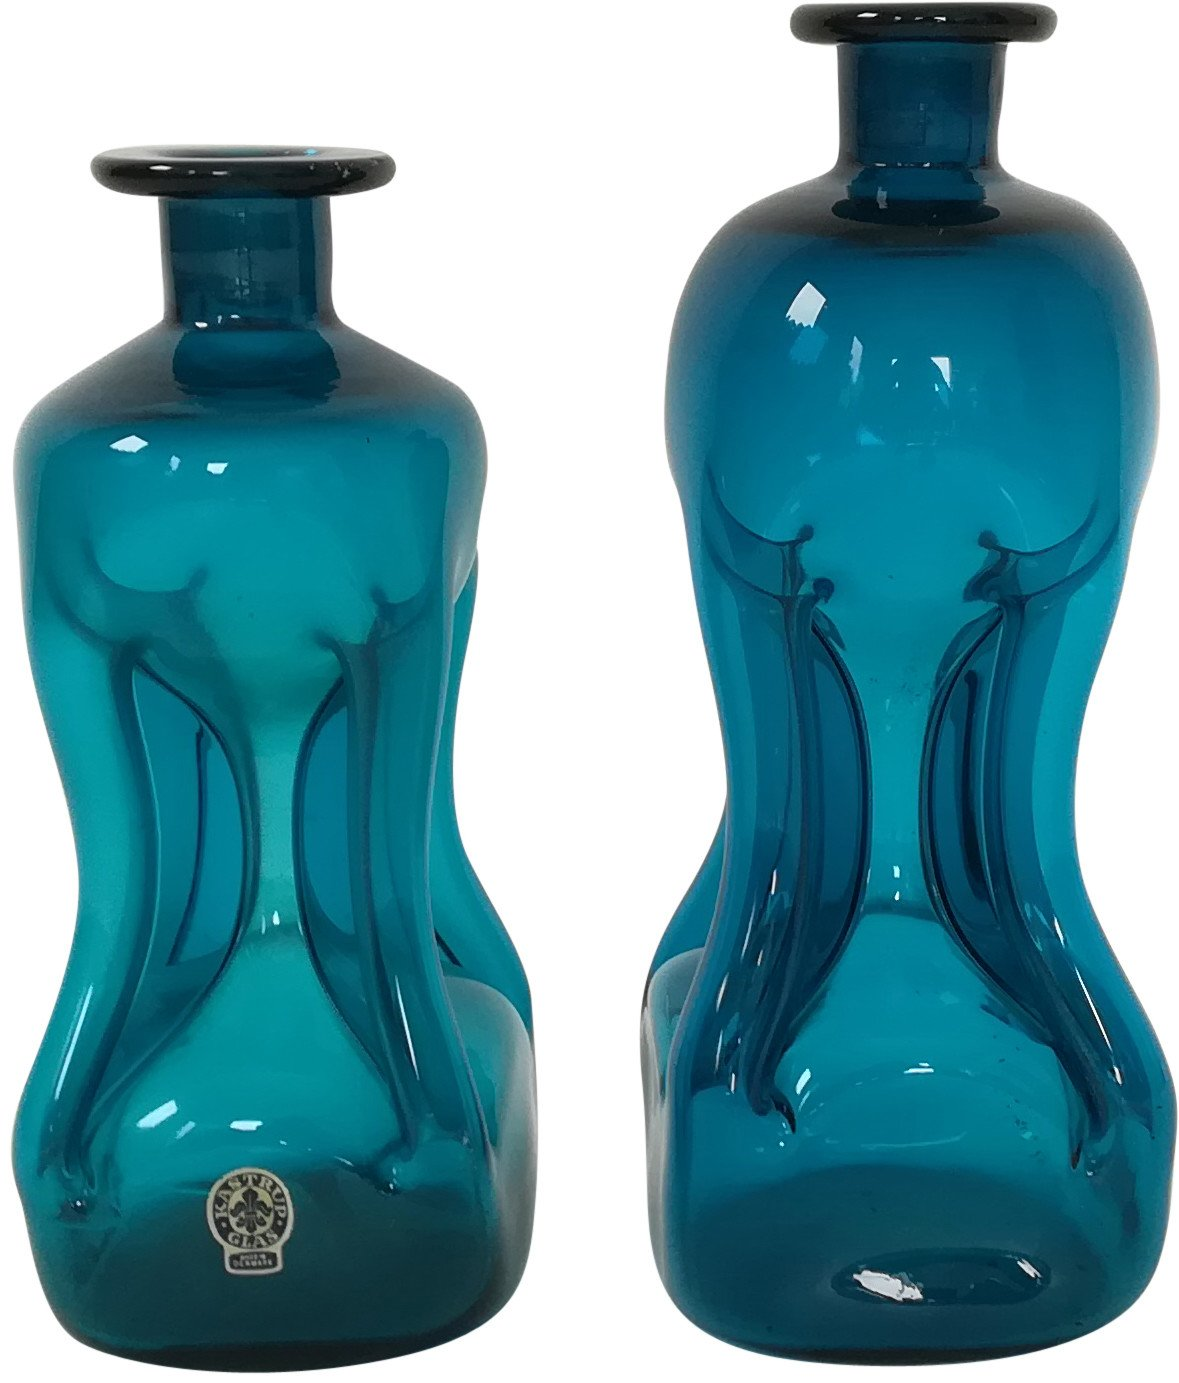 Pair of Carafes by J. Bang for Kastrup Glass, Denmark, 1960s